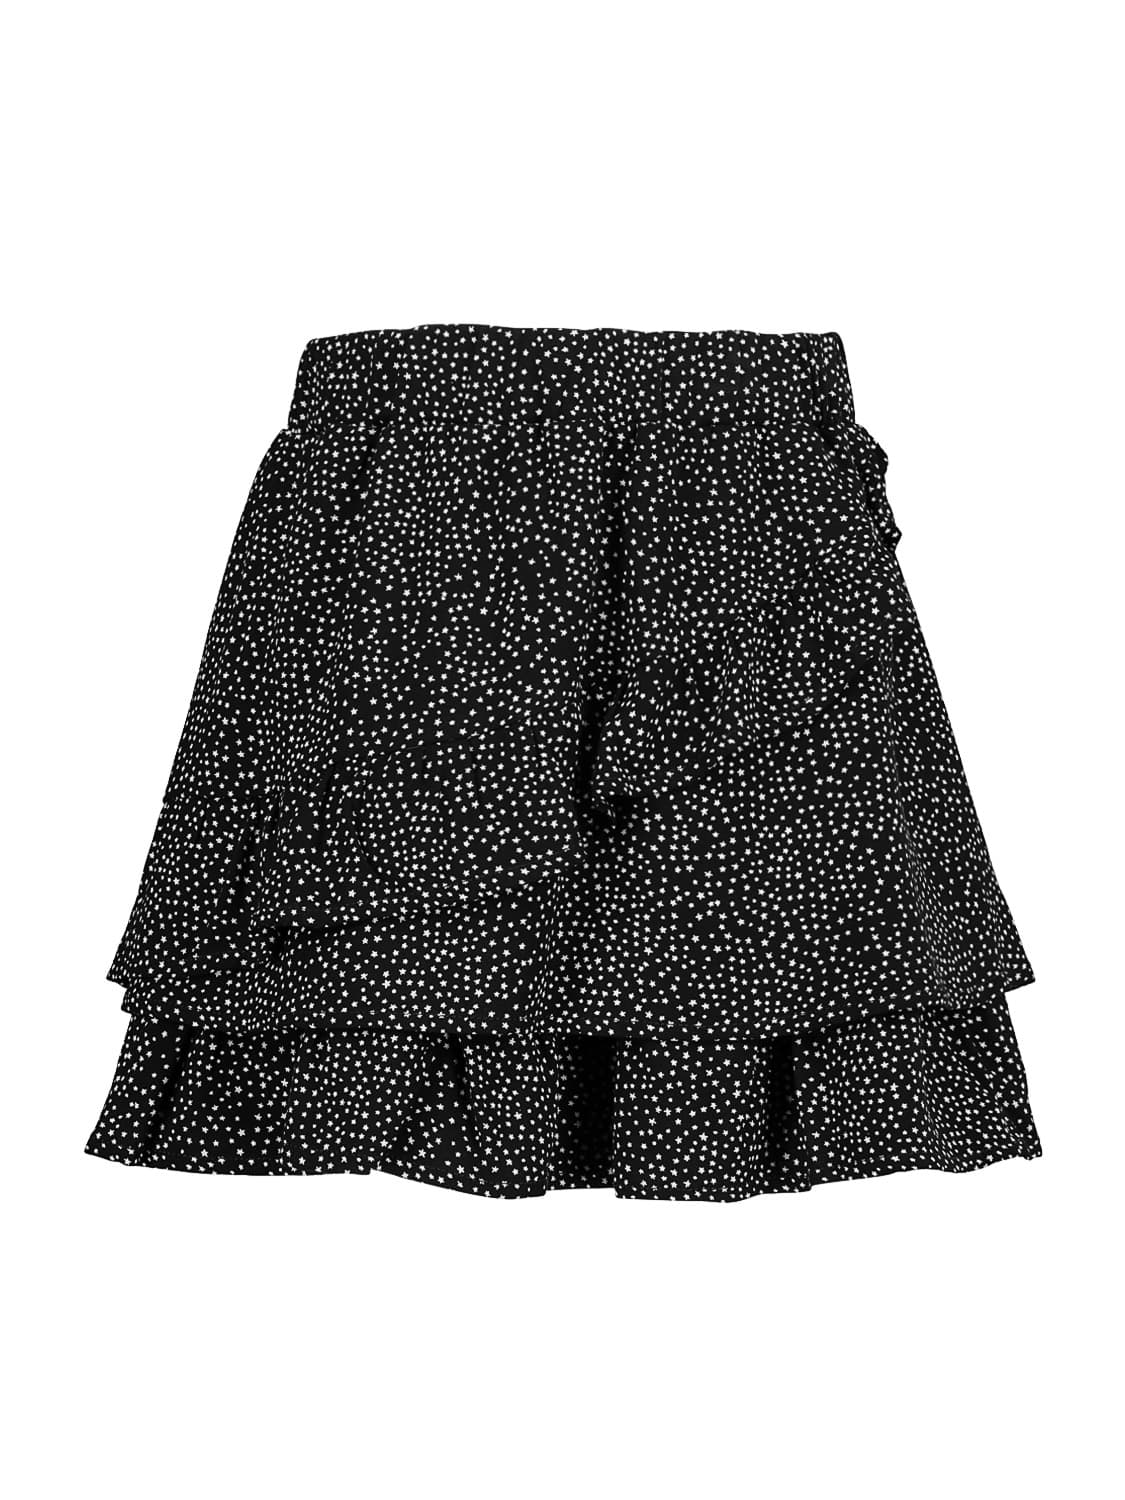 Ikks KIDS SKIRT FOR GIRLS